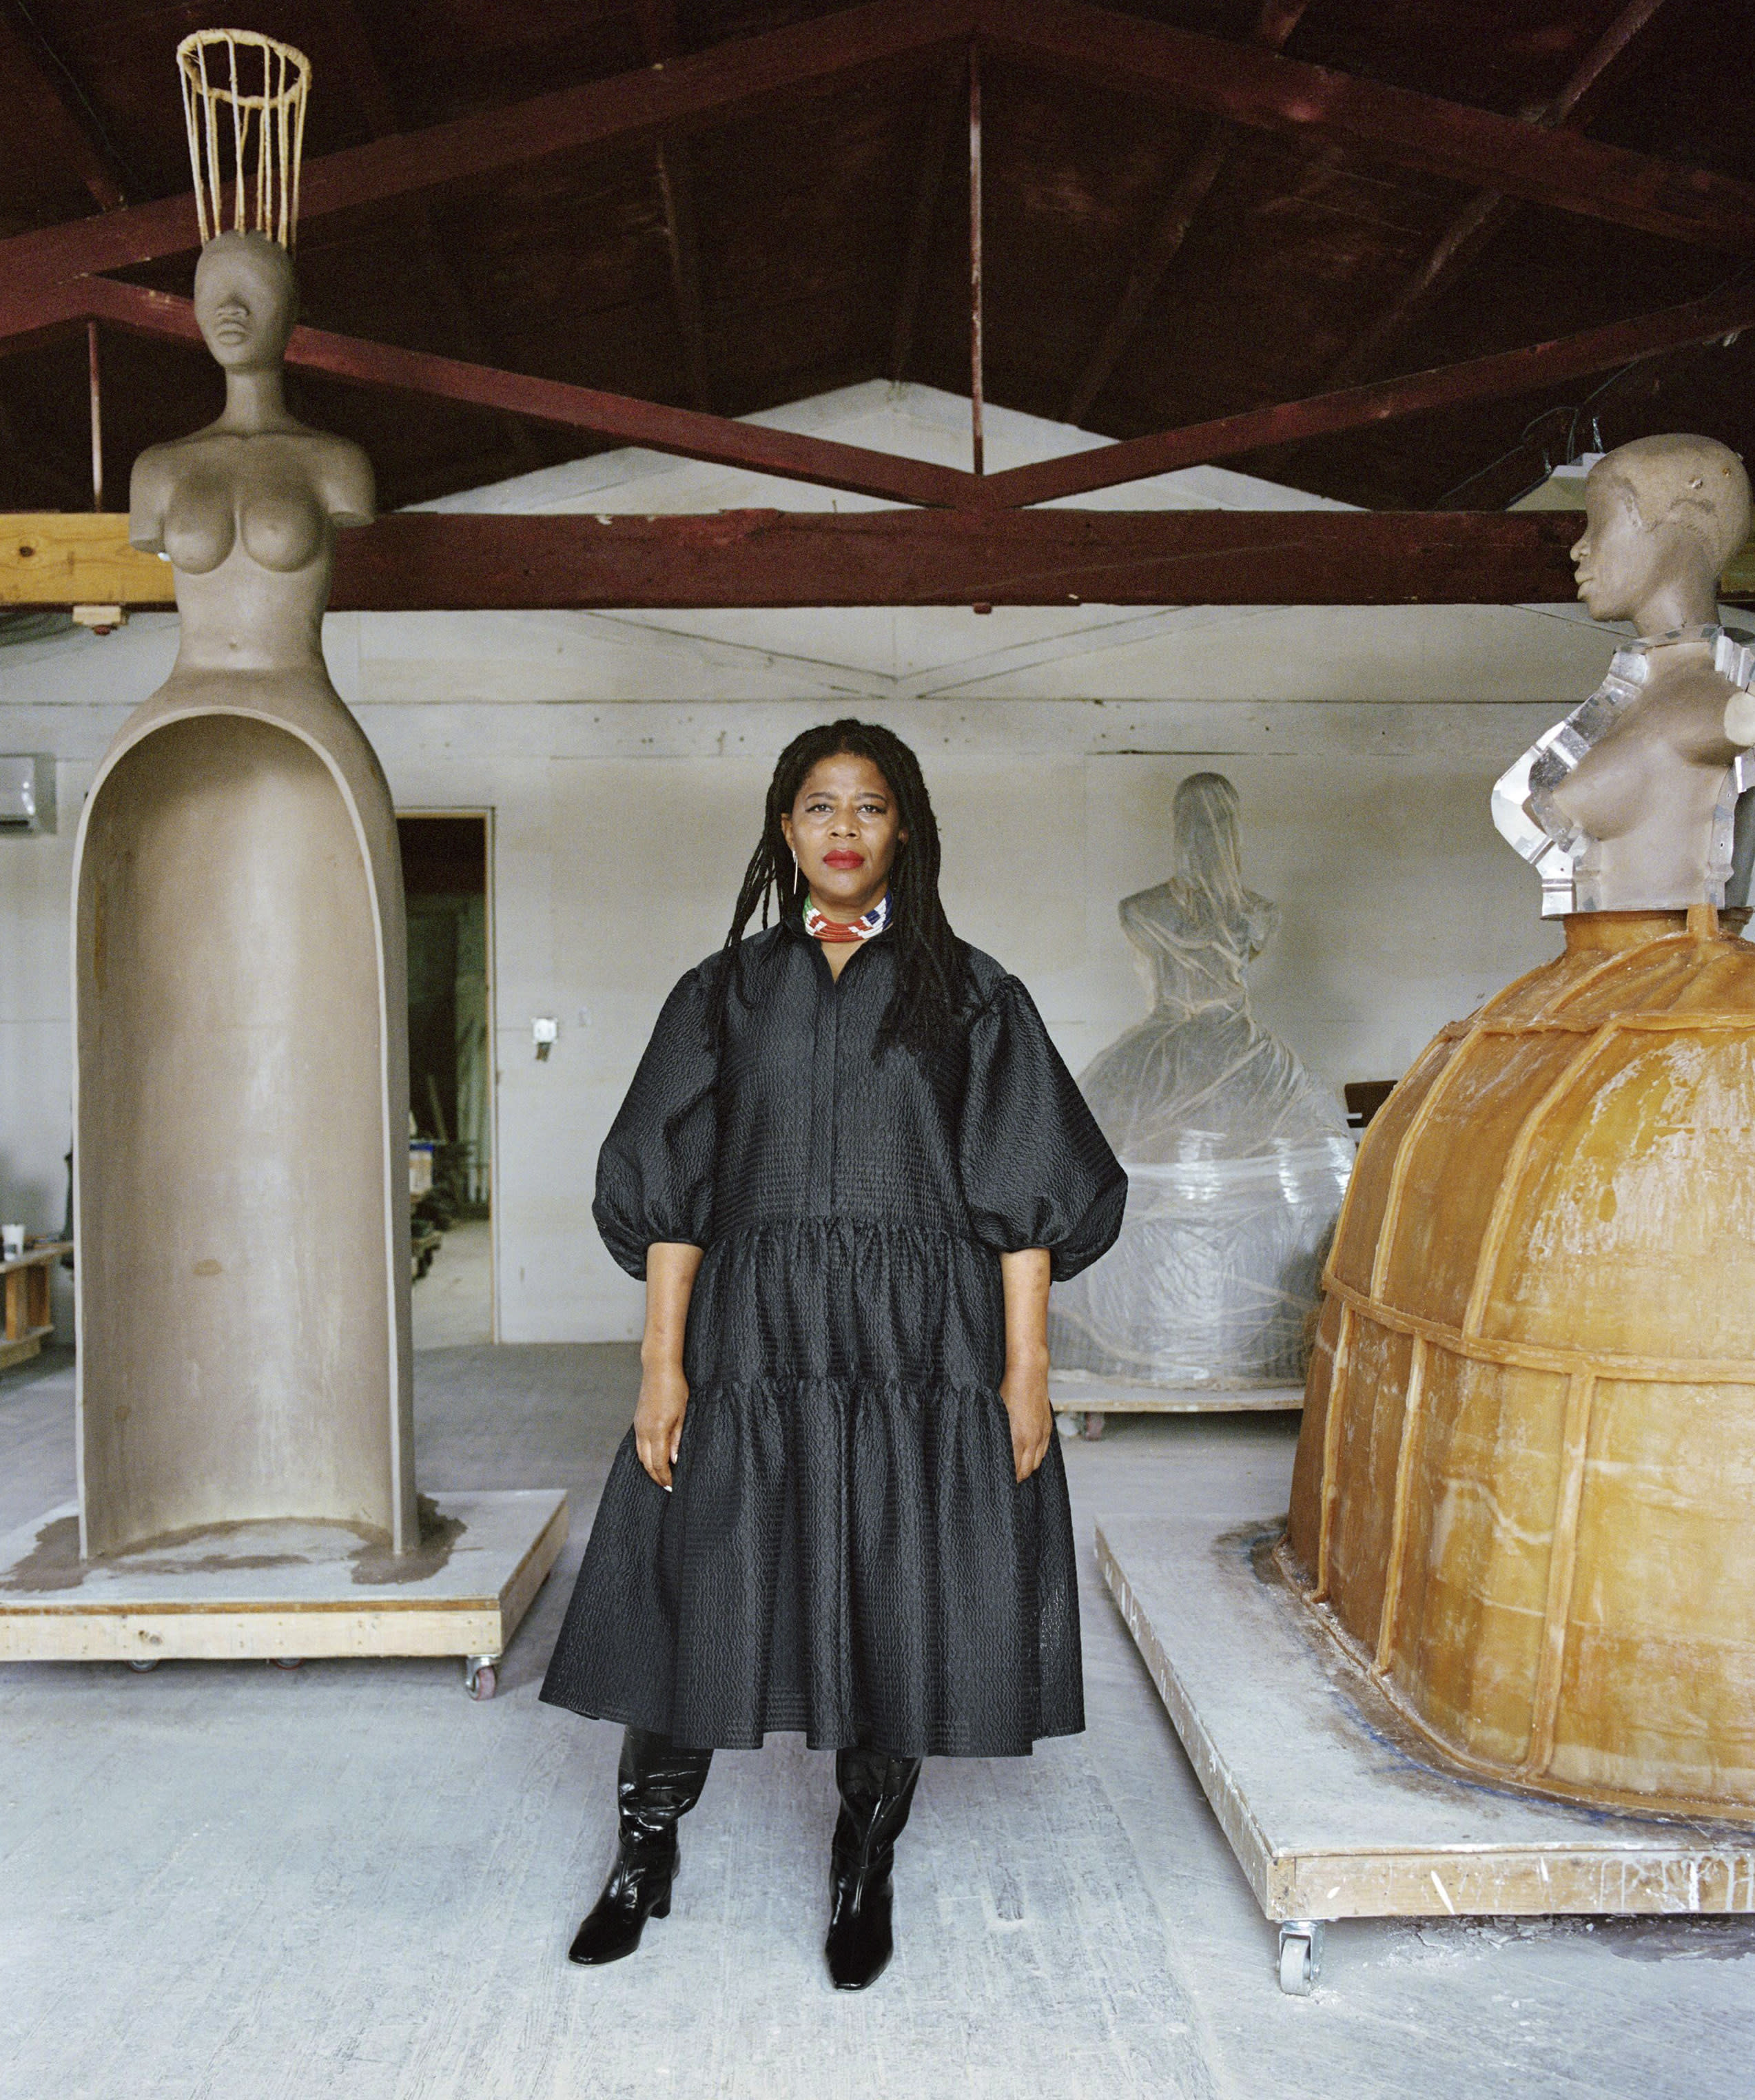 In this 2020 photo provided by Boston's Institute of Contemporary Art, artist Simone Leigh poses for a photo at Stratton Sculpture Studios in Philadelphia. Leigh will be the first Black woman ever to represent the U.S. at Italy's prestigious Venice Biennale arts festival to be held in 2022. (Shaniqwa Jarvis/Simone Leigh and Hauser & Wirth via AP)